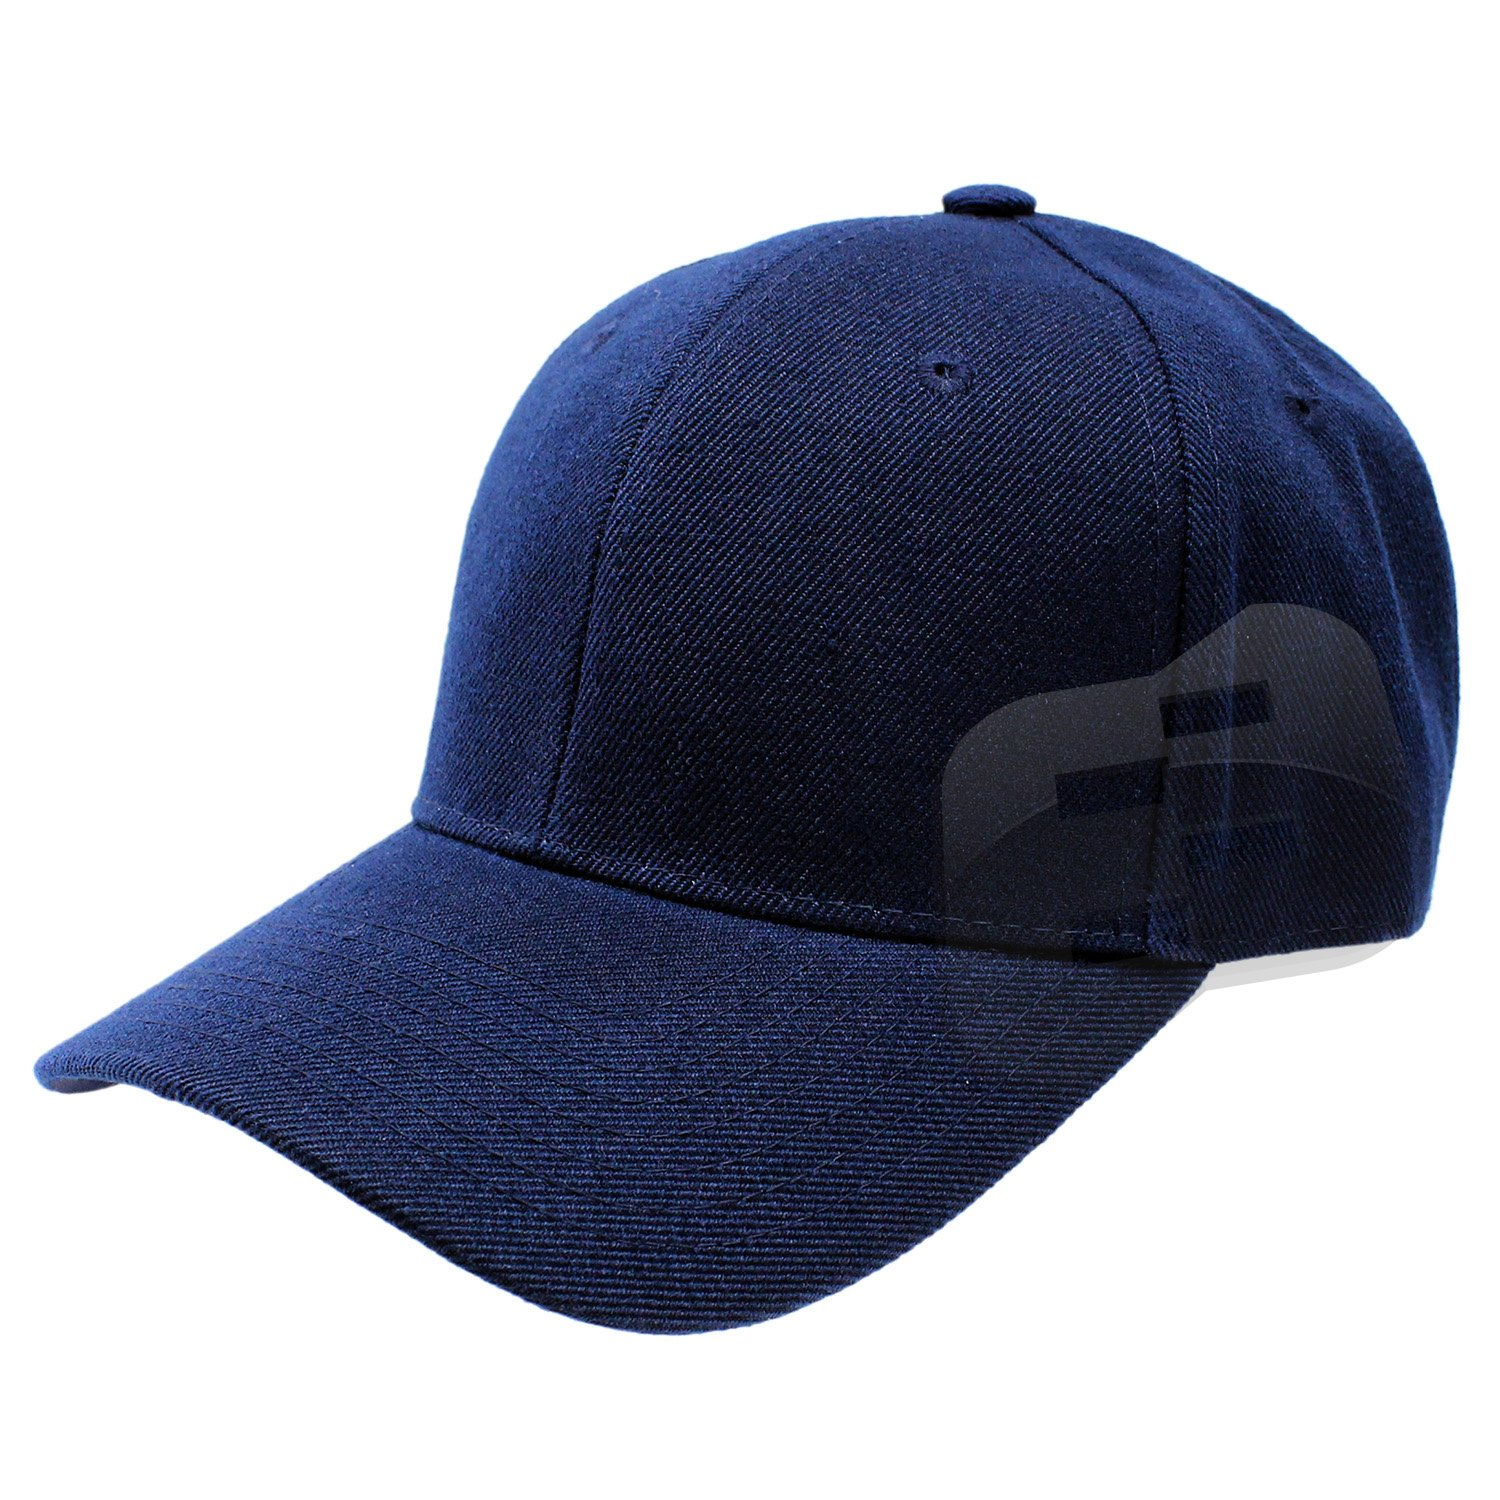 Enimay Baseball Hats Caps Curved Bill Solid Color No Logo Navy Blue 7 1 4  at Amazon Men s Clothing store  d0bf4ce279d